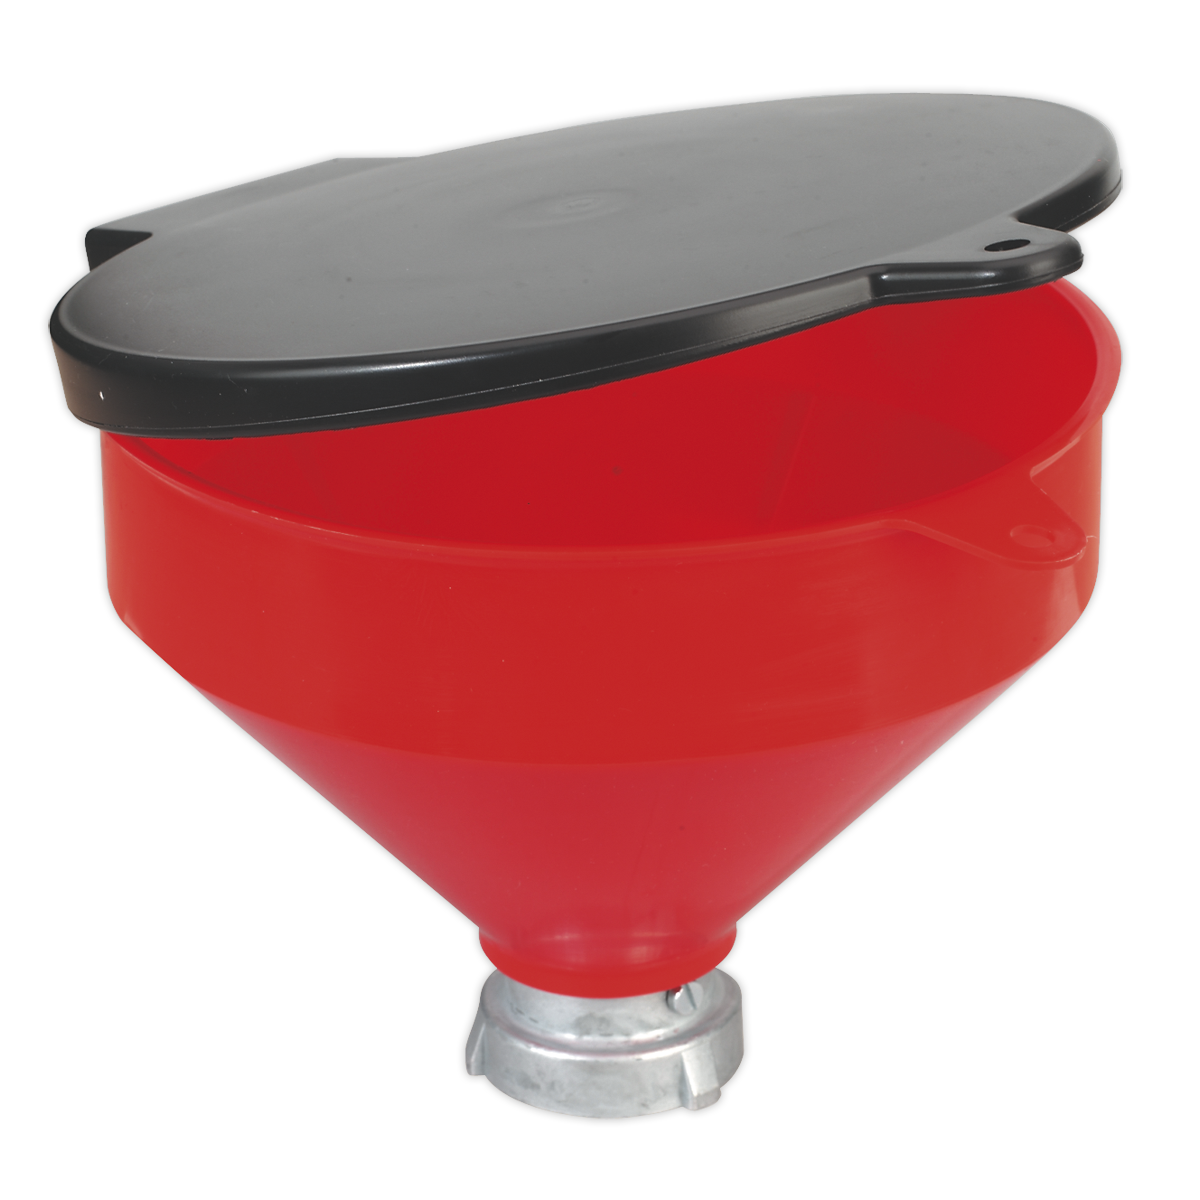 Sealey F5 /Ø250mm Large Fixed Spout Funnel